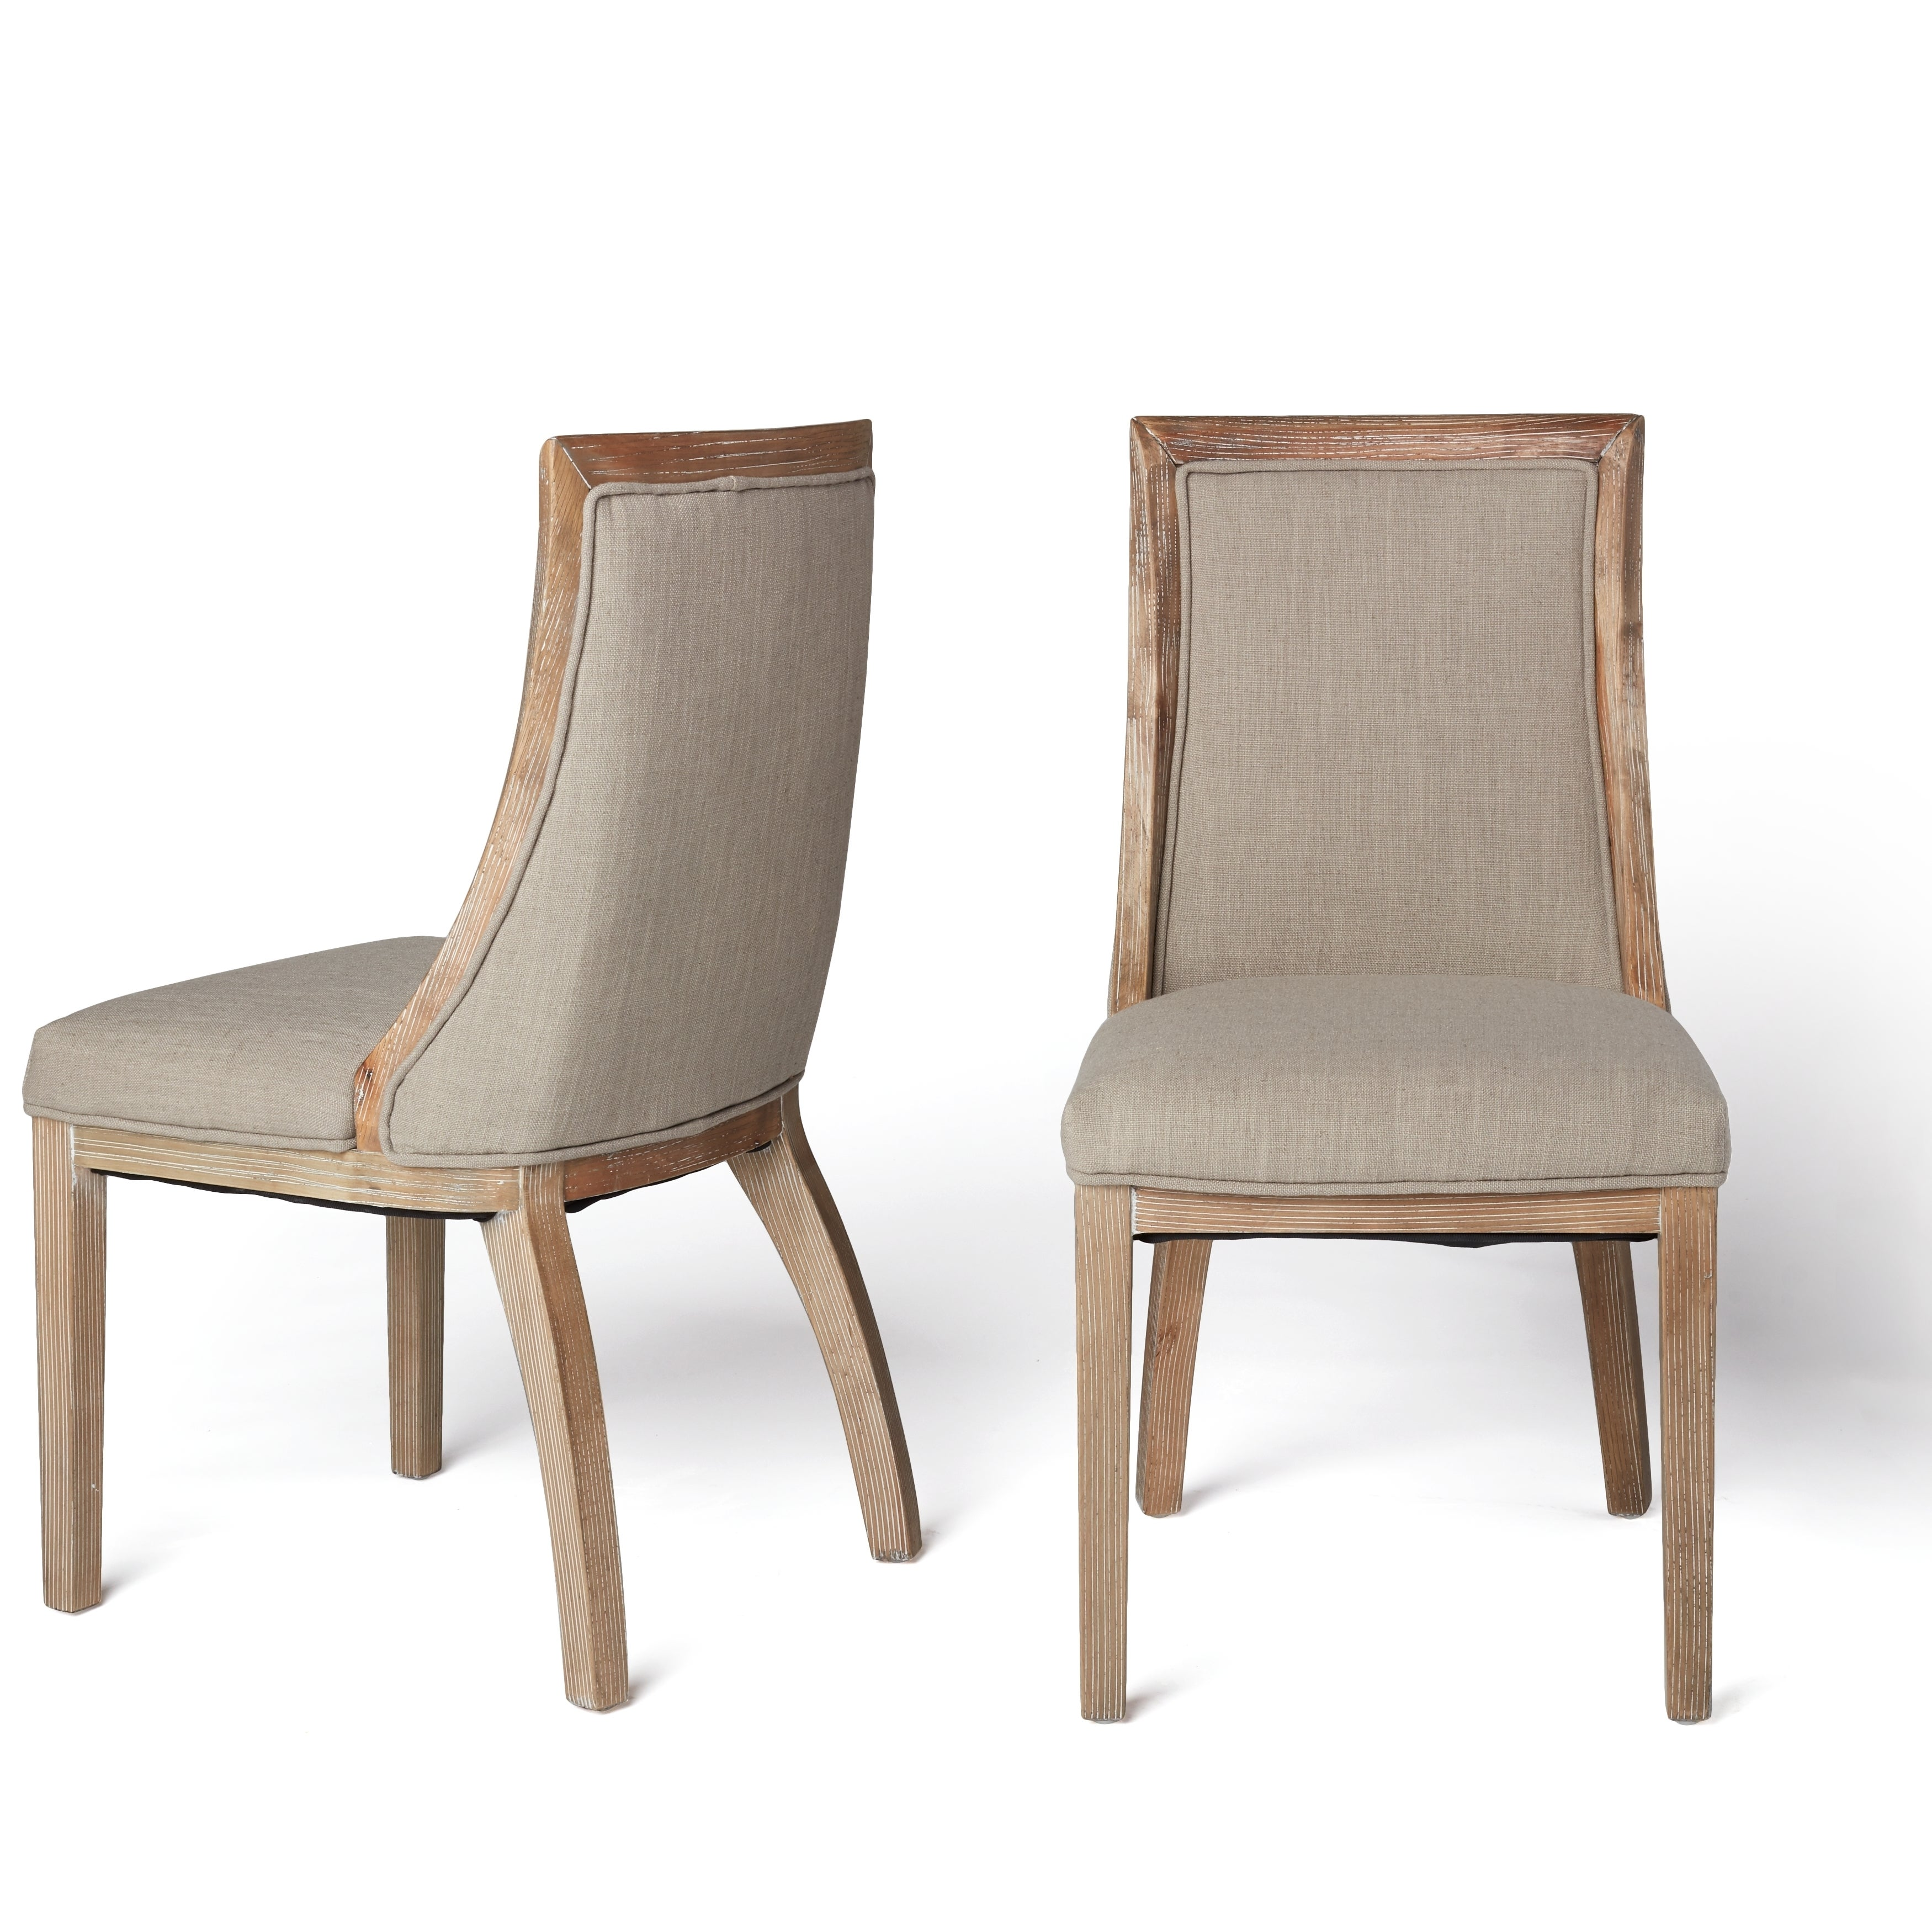 Charmant Shop Stones U0026 Stripes Park Avenue Beige Linen Dining Chairs (Set Of 2)    Free Shipping Today   Overstock.com   8682598